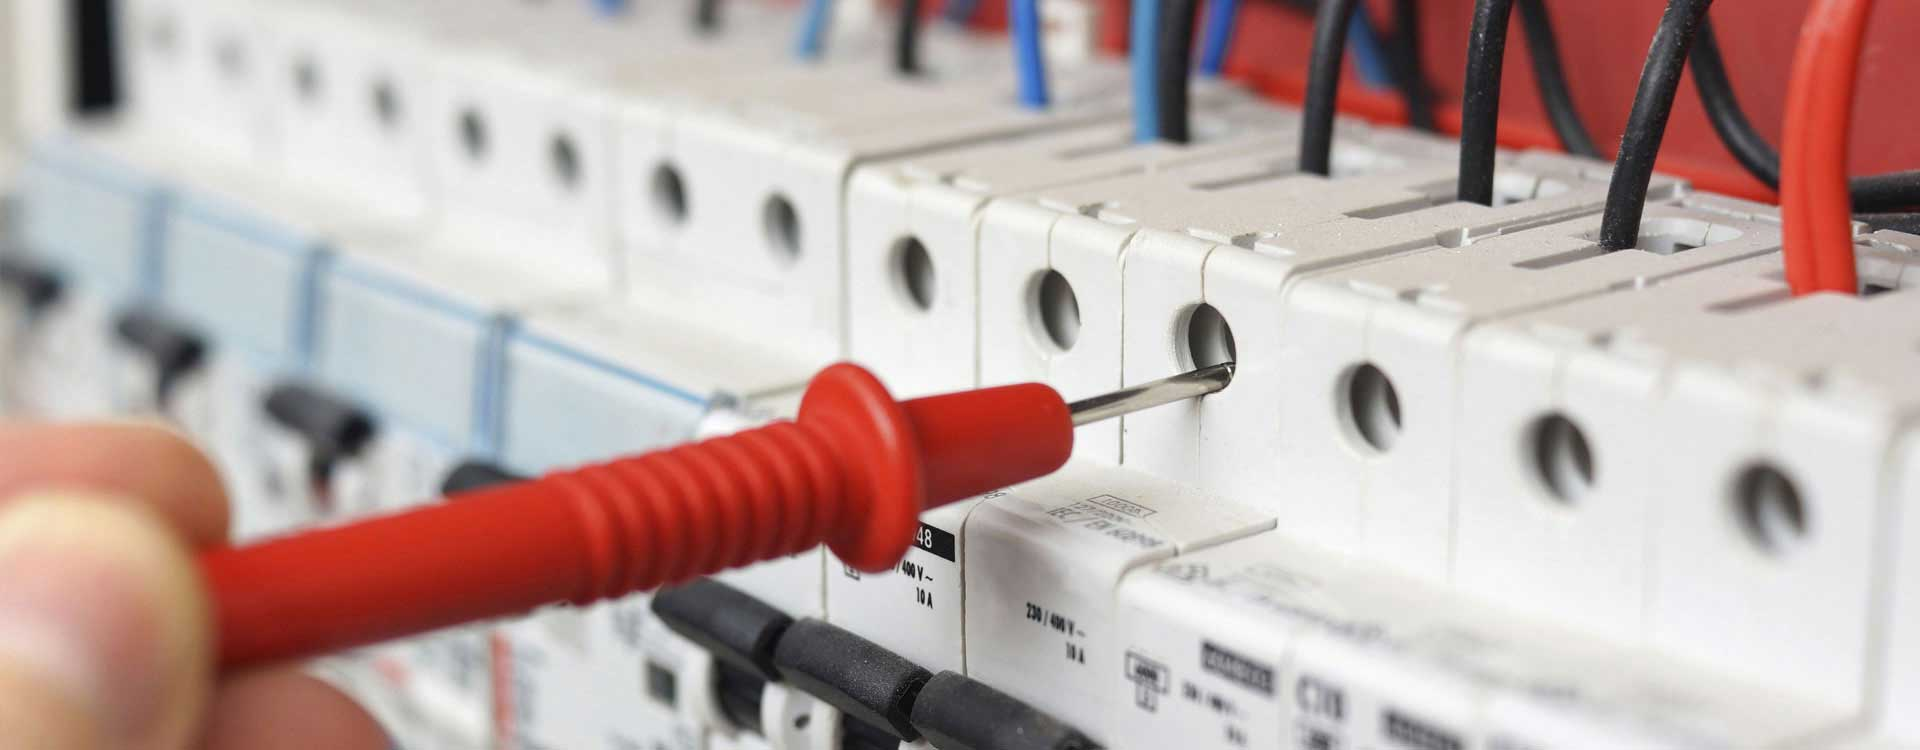 Electrical engineering systems